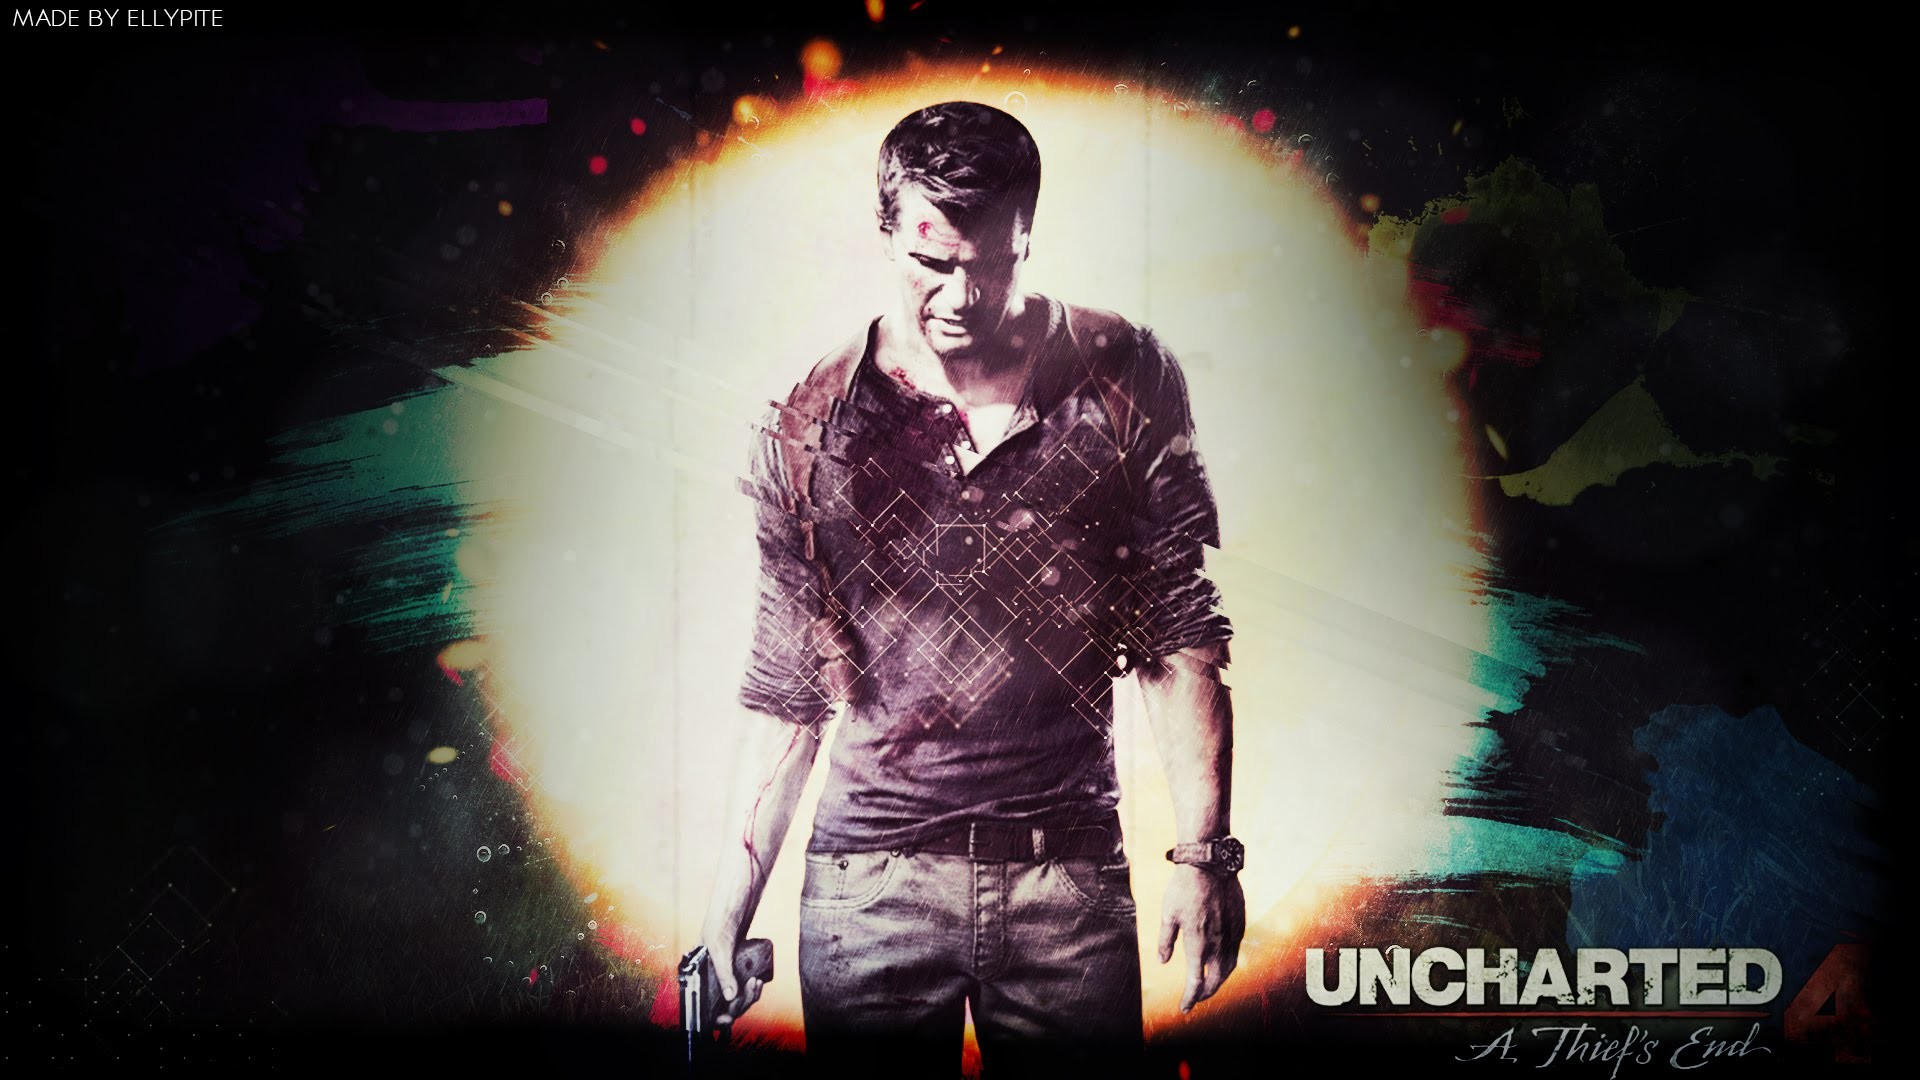 Uncharted 4 – A Thief's End Wallpaper [SpeedArt/Made by Ellypite] – YouTube